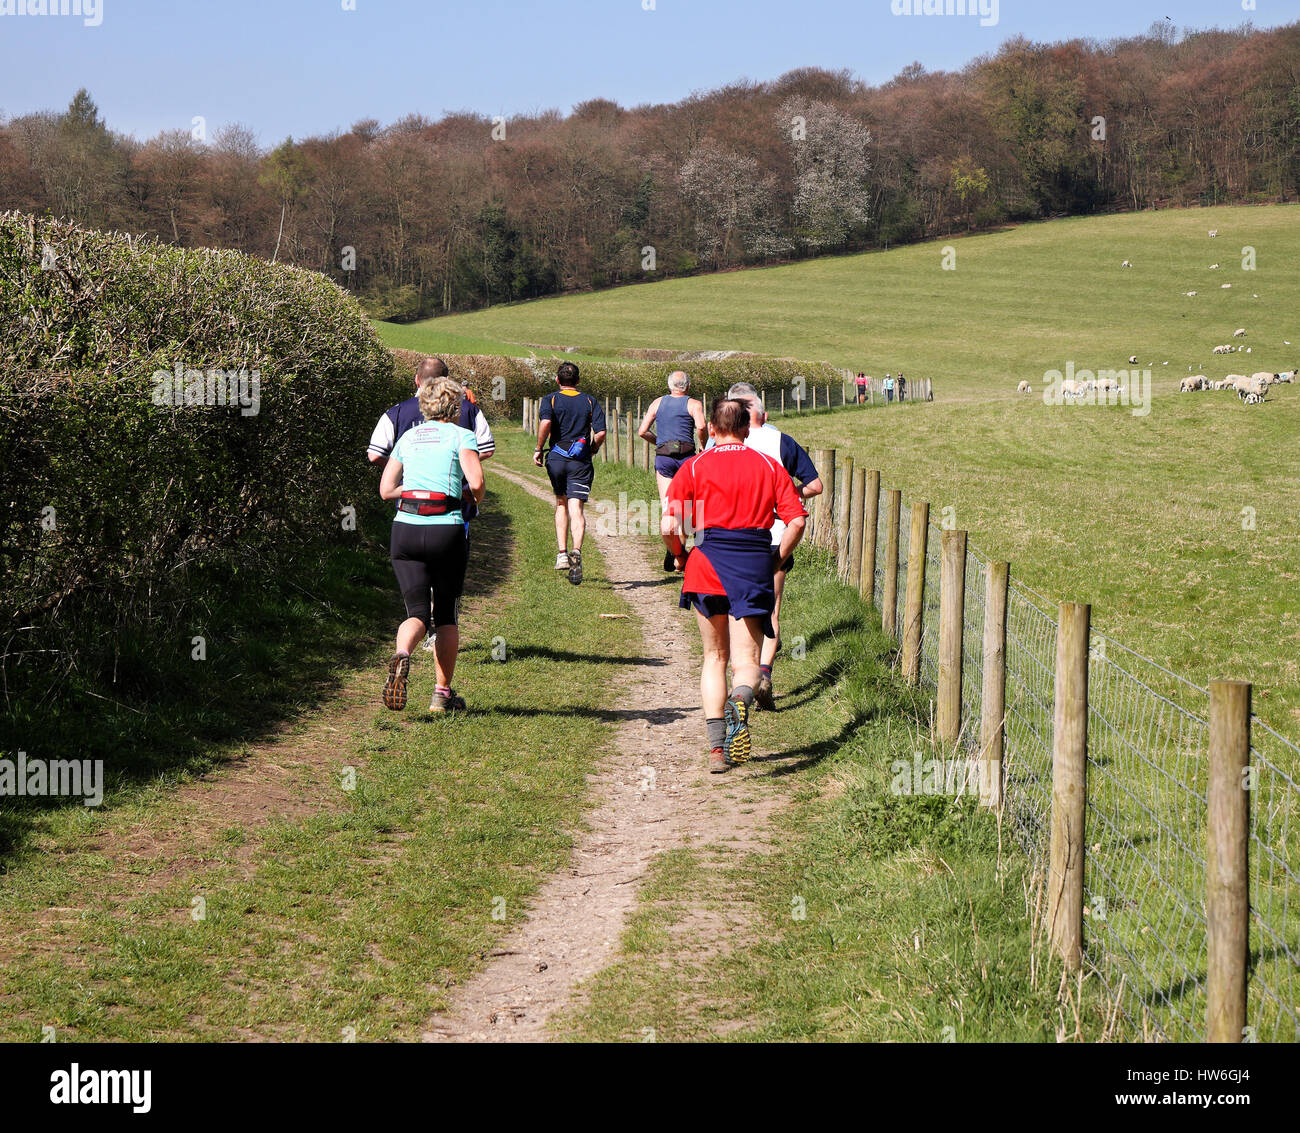 Male and female Joggers and ramblers on a rural track in the Chiltern Hills - Stock Image